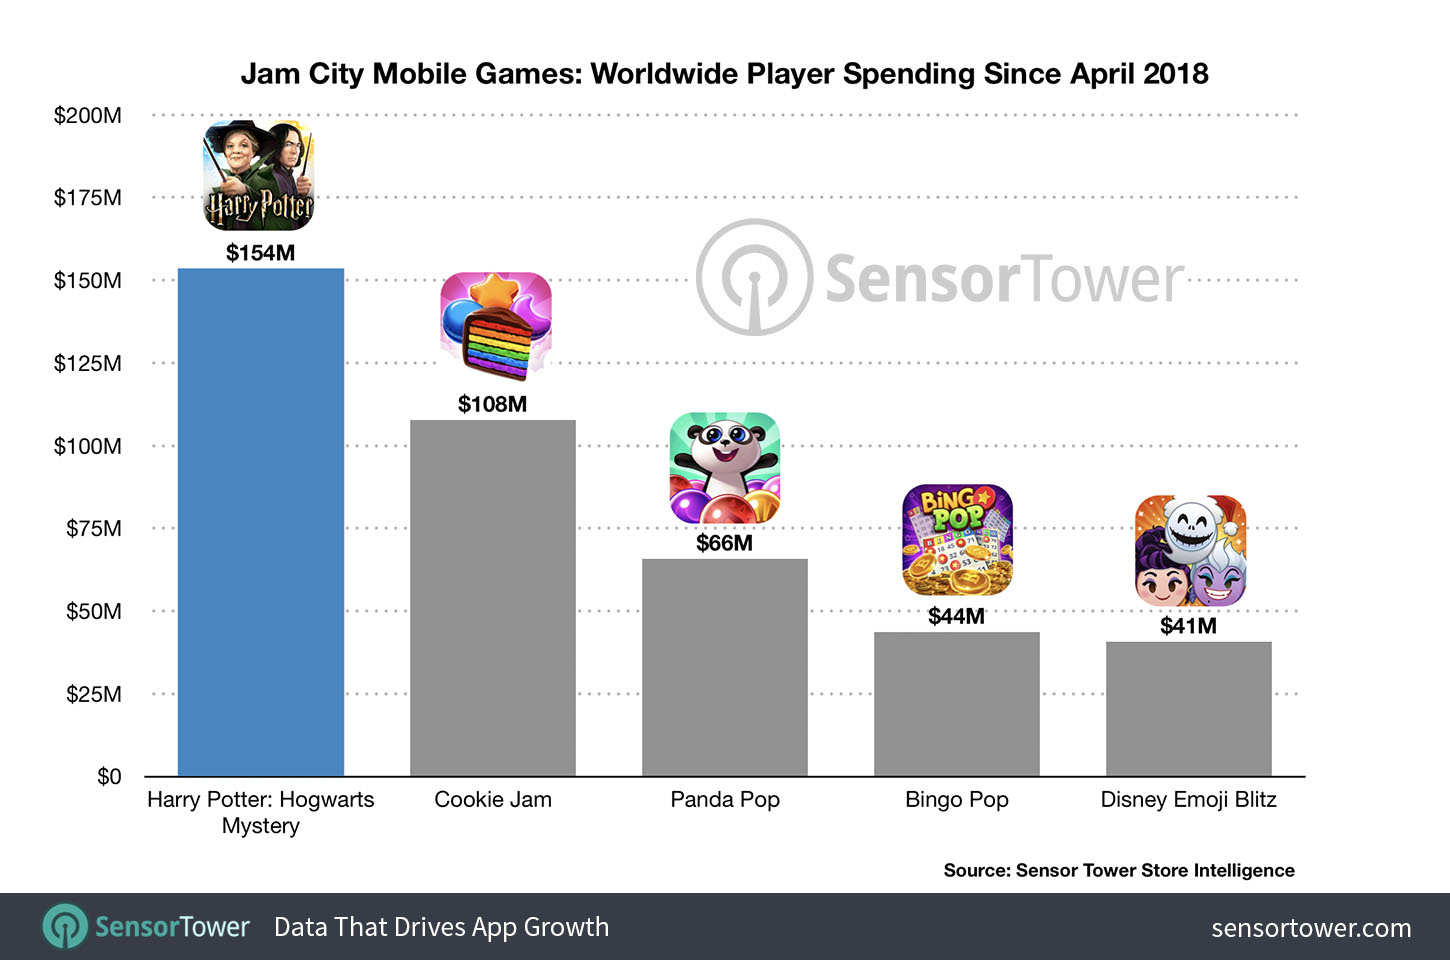 """""""Harry Potter: Hogwarts Mystery lifetime revenue compared to Jam City's other mobile games since 2018"""""""